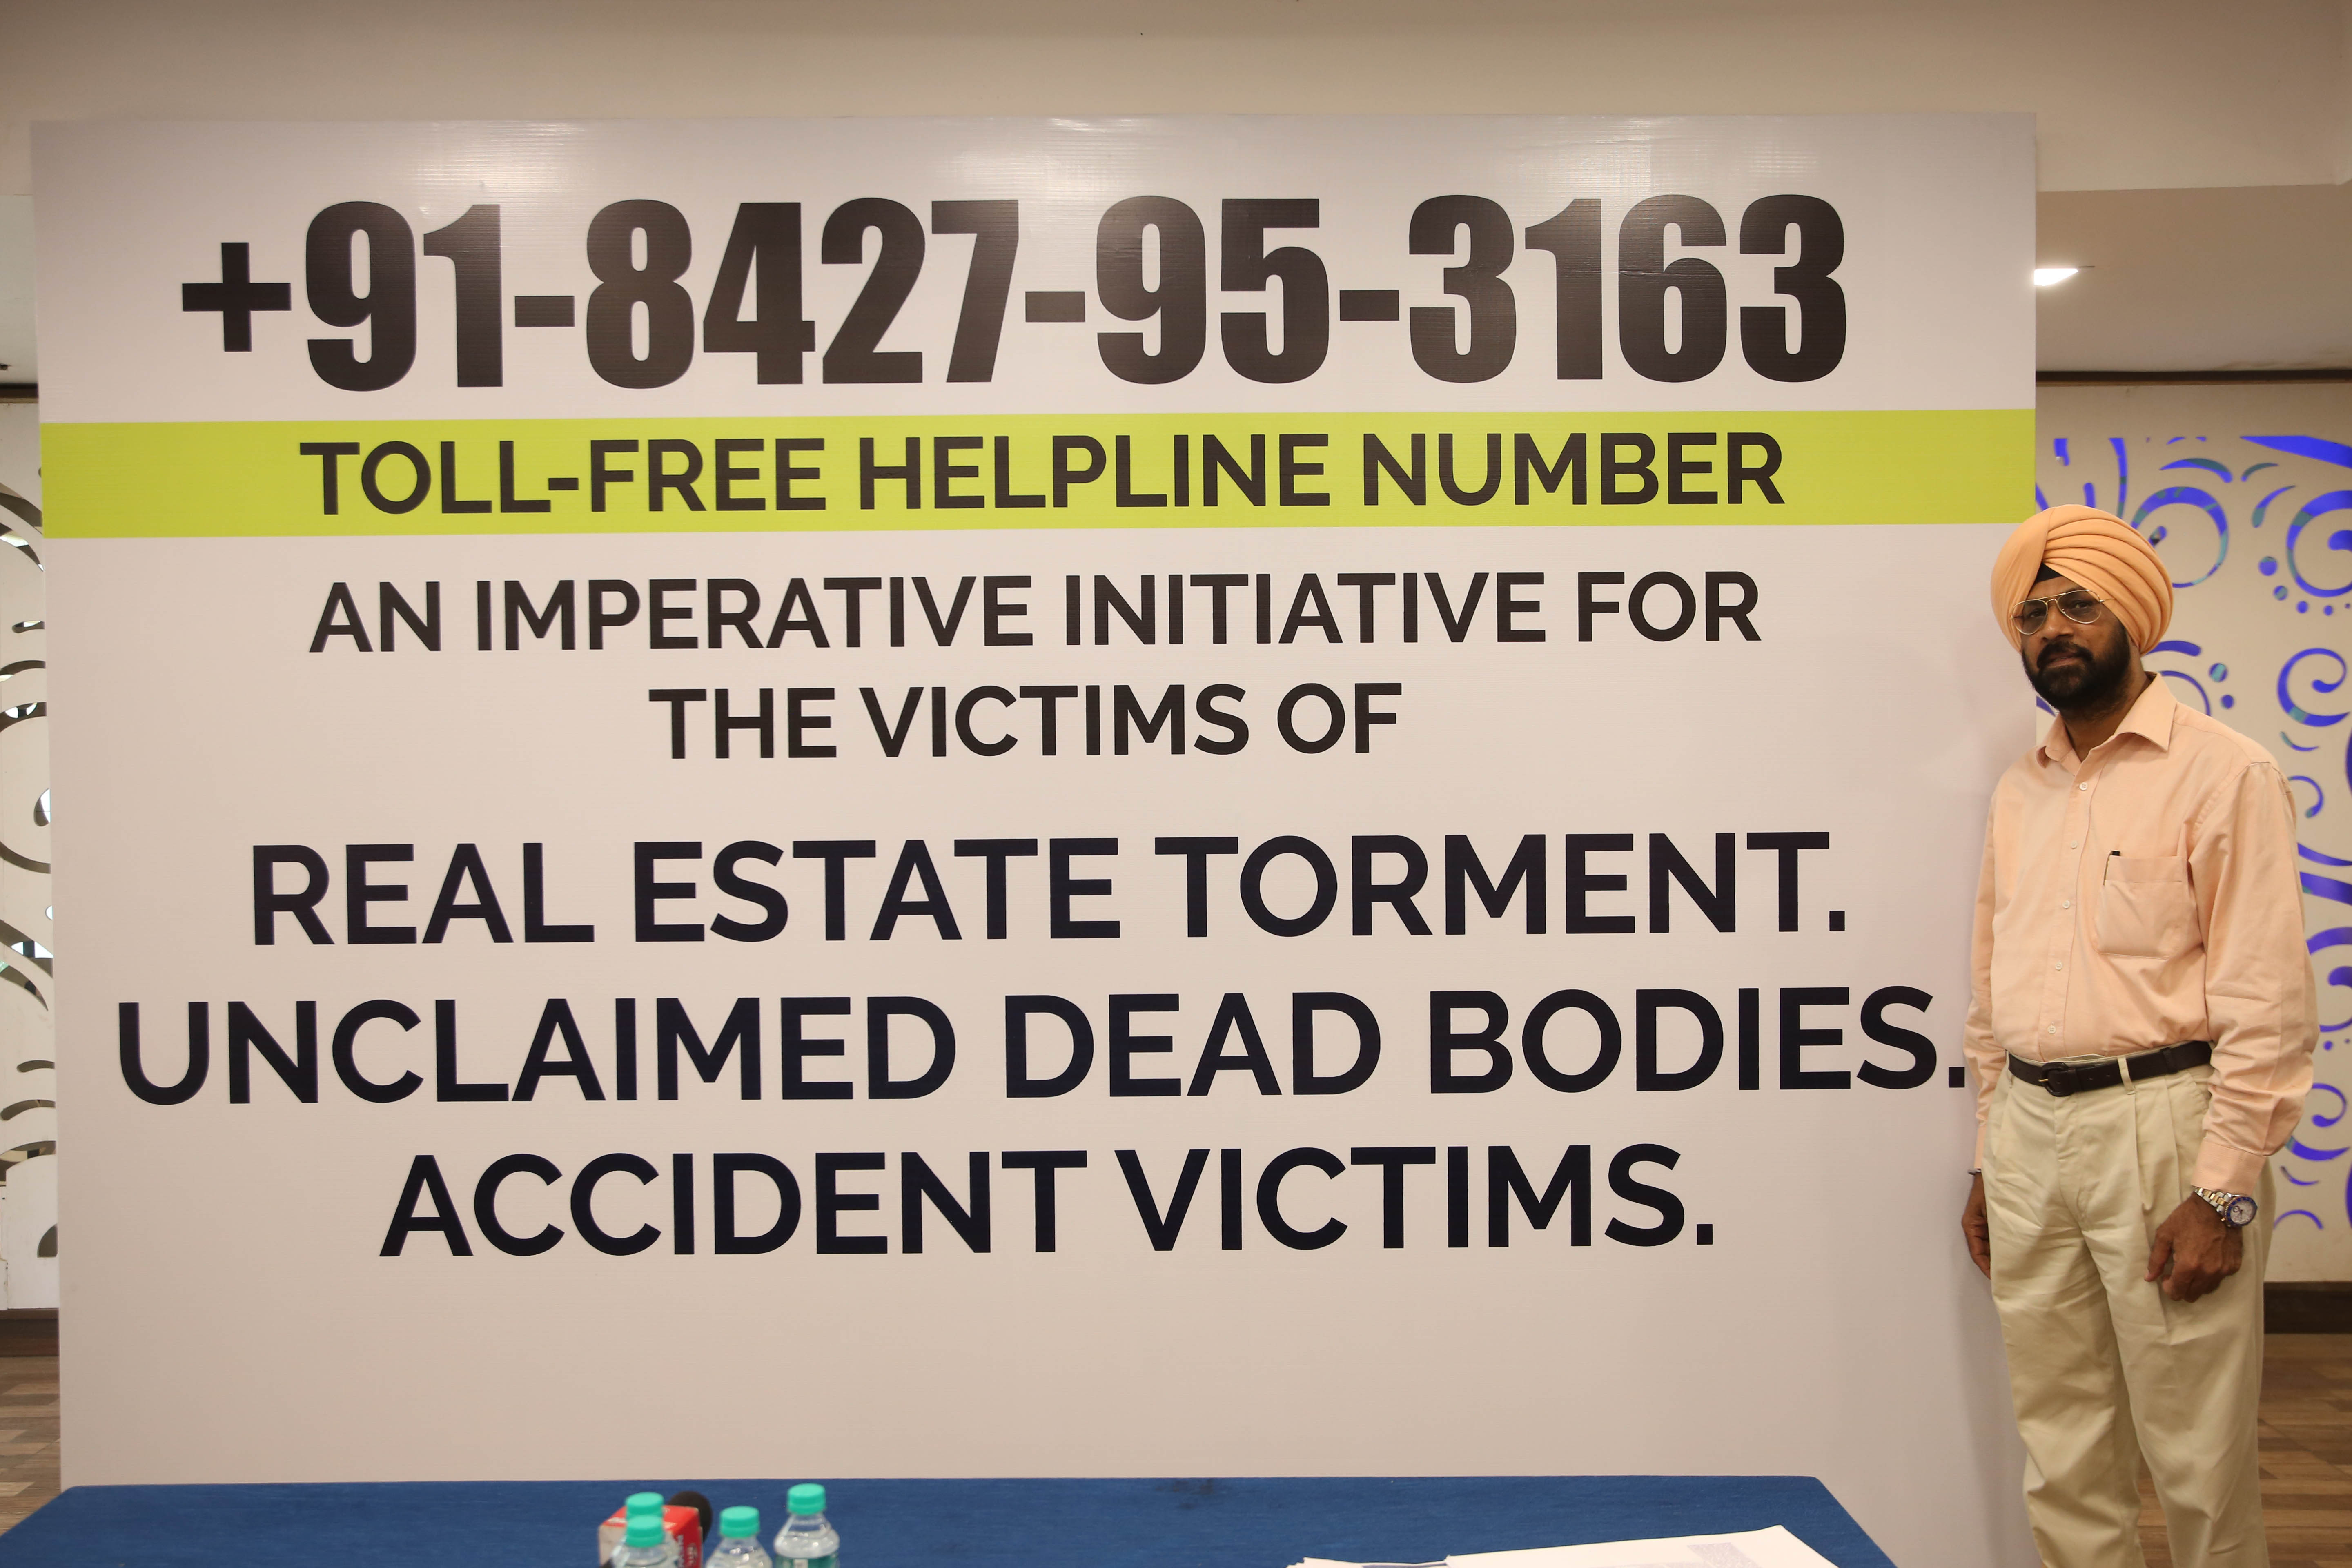 Toll-free helpline number, an imperative initiative for the victims of Real Estate torment